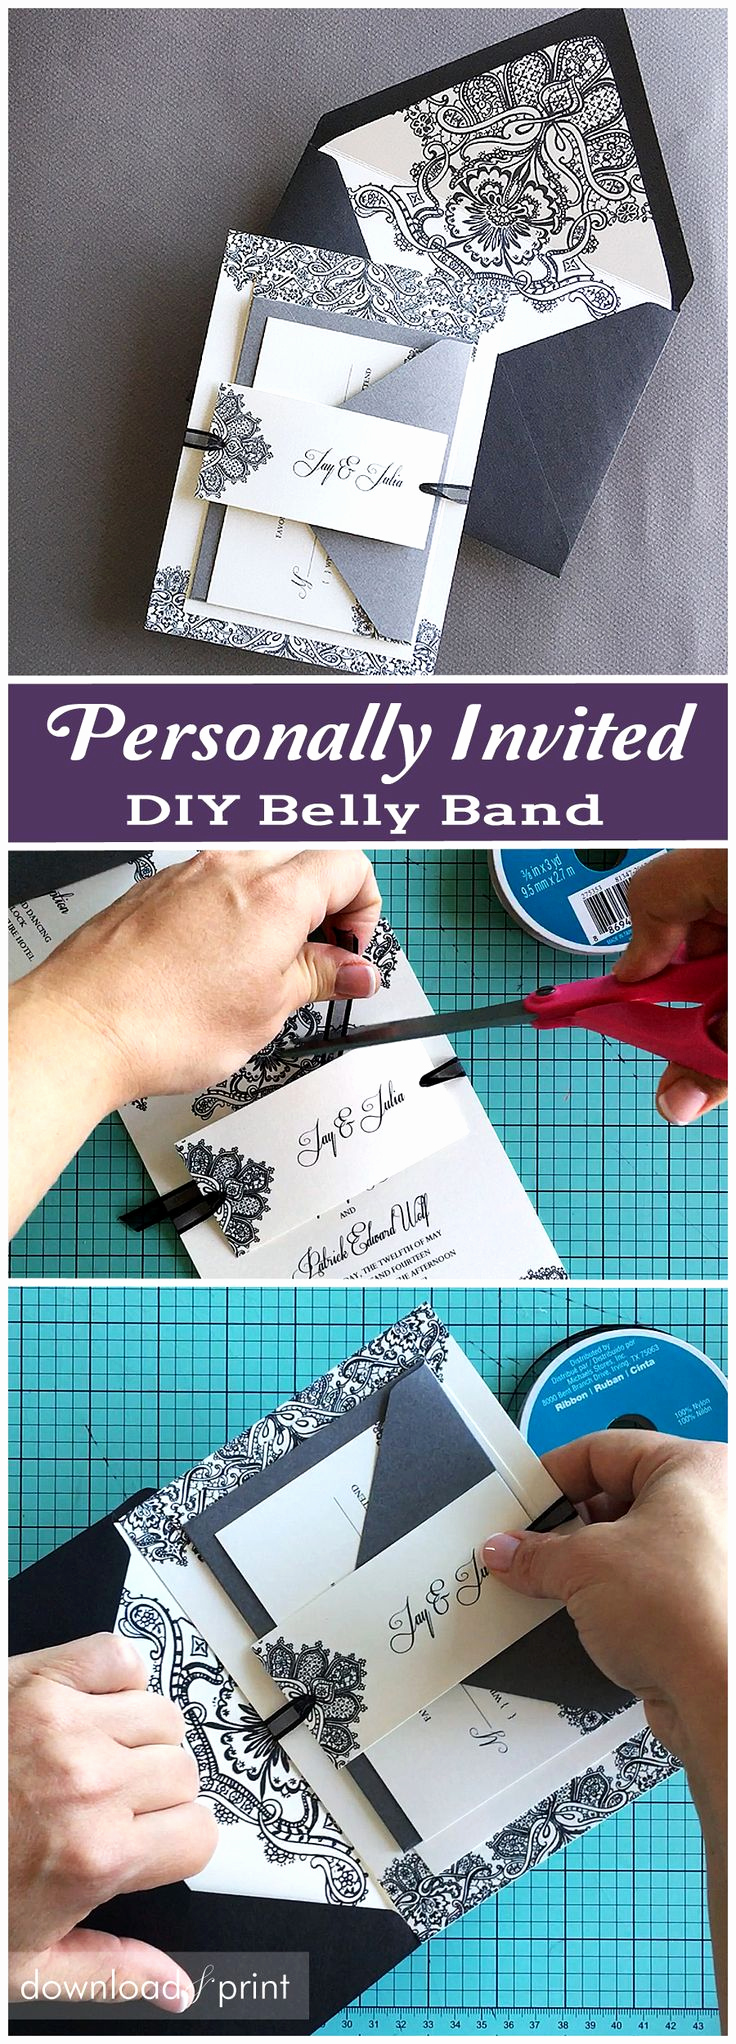 Diy Wedding Invitation Belly Band Inspirational 25 Best Ideas About Belly Bands On Pinterest